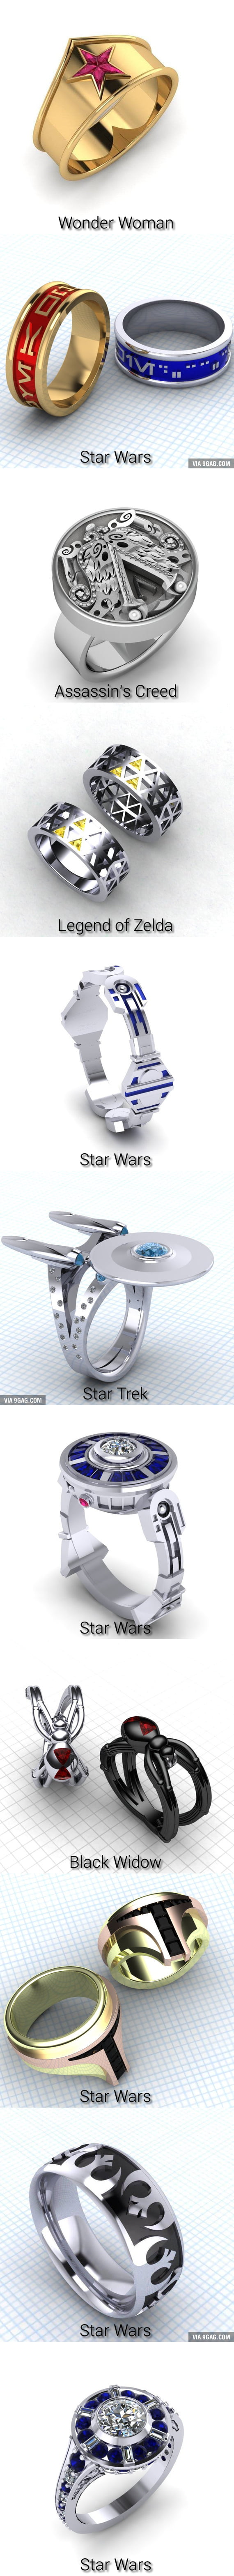 il bit decor game rings fullxfull ideas engagement gamer promise ring nerd nerdy wedding video